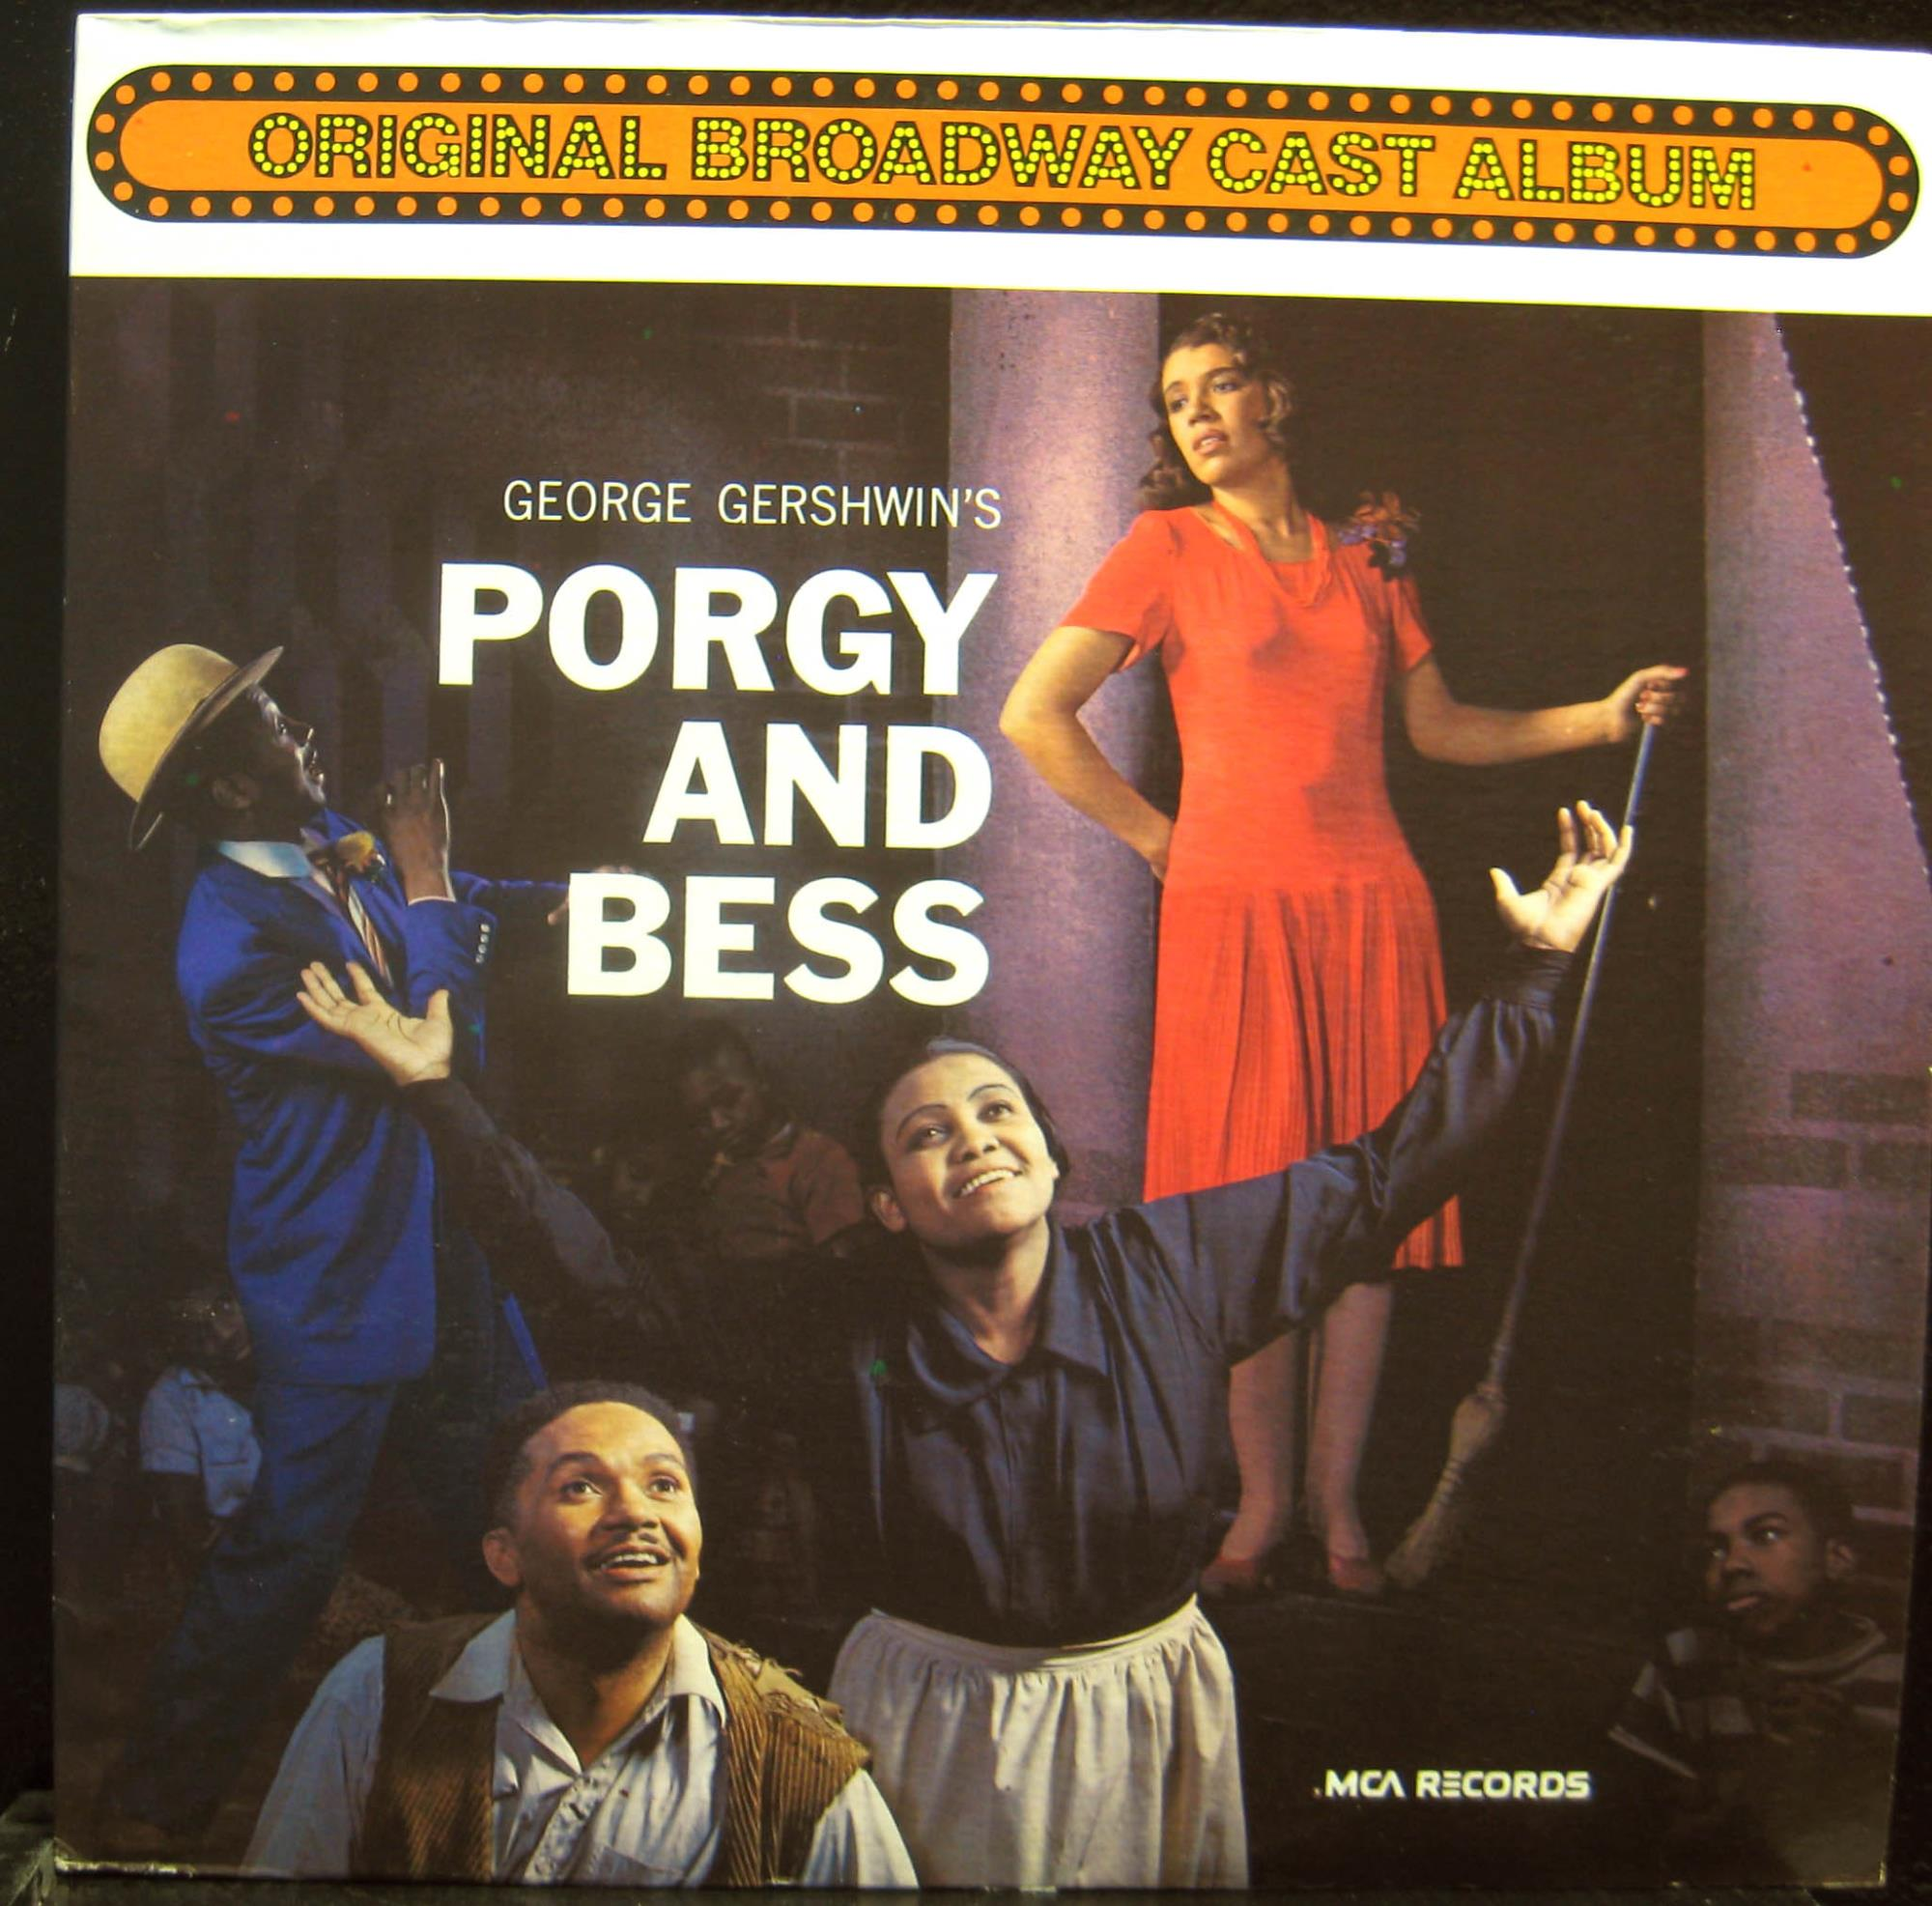 Porgy and Bess Broadway @ Richard Rodgers Porgy and bess photos